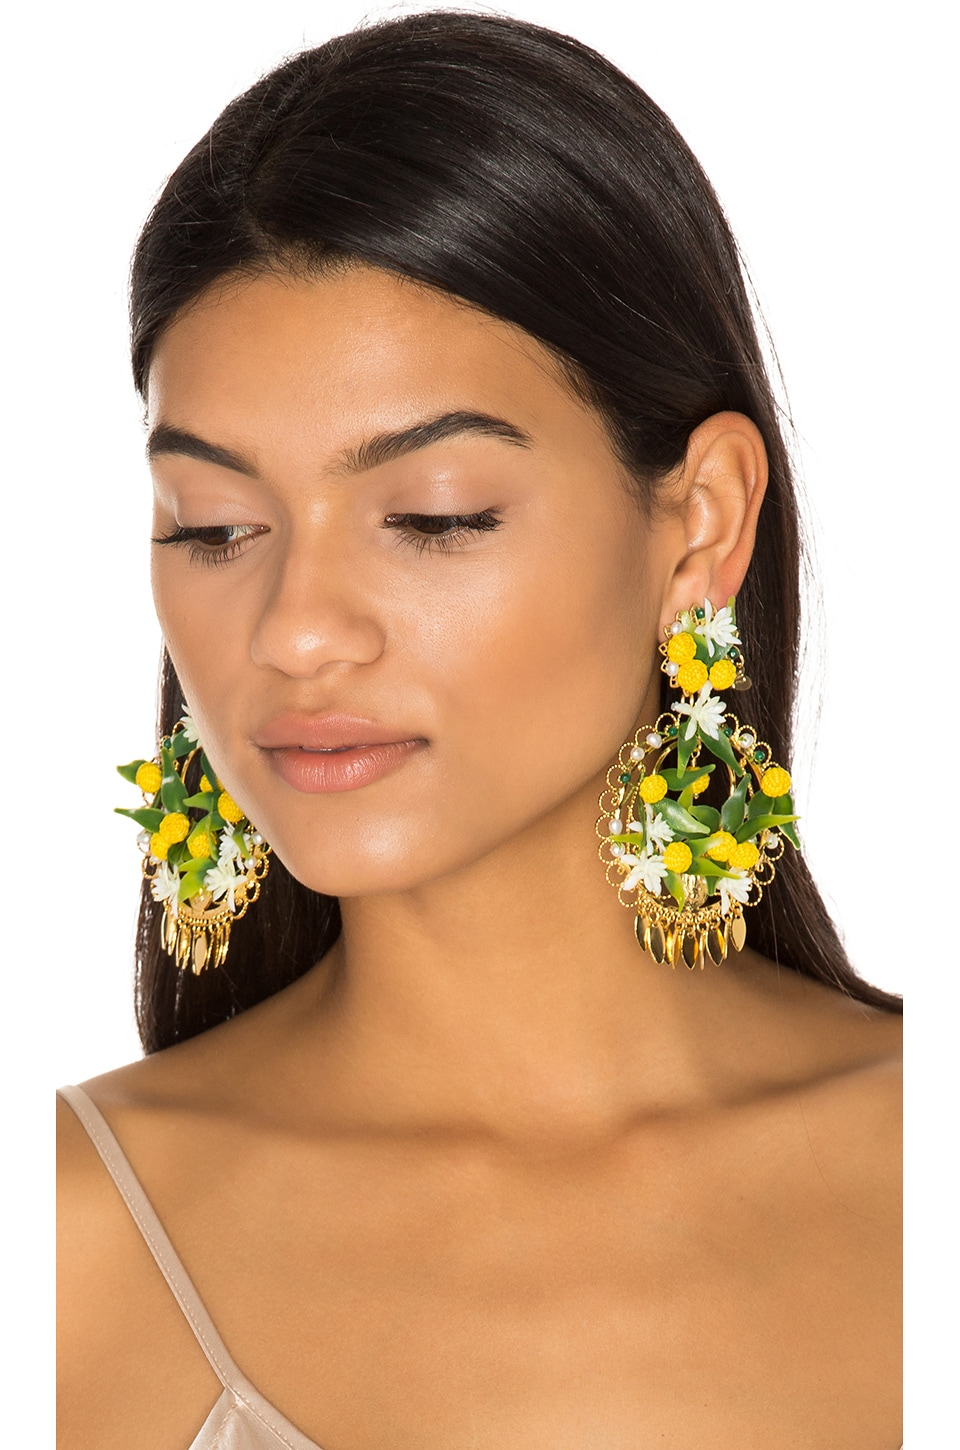 Mercedes Salazar Fiesta Lemon Earrings in Yellow